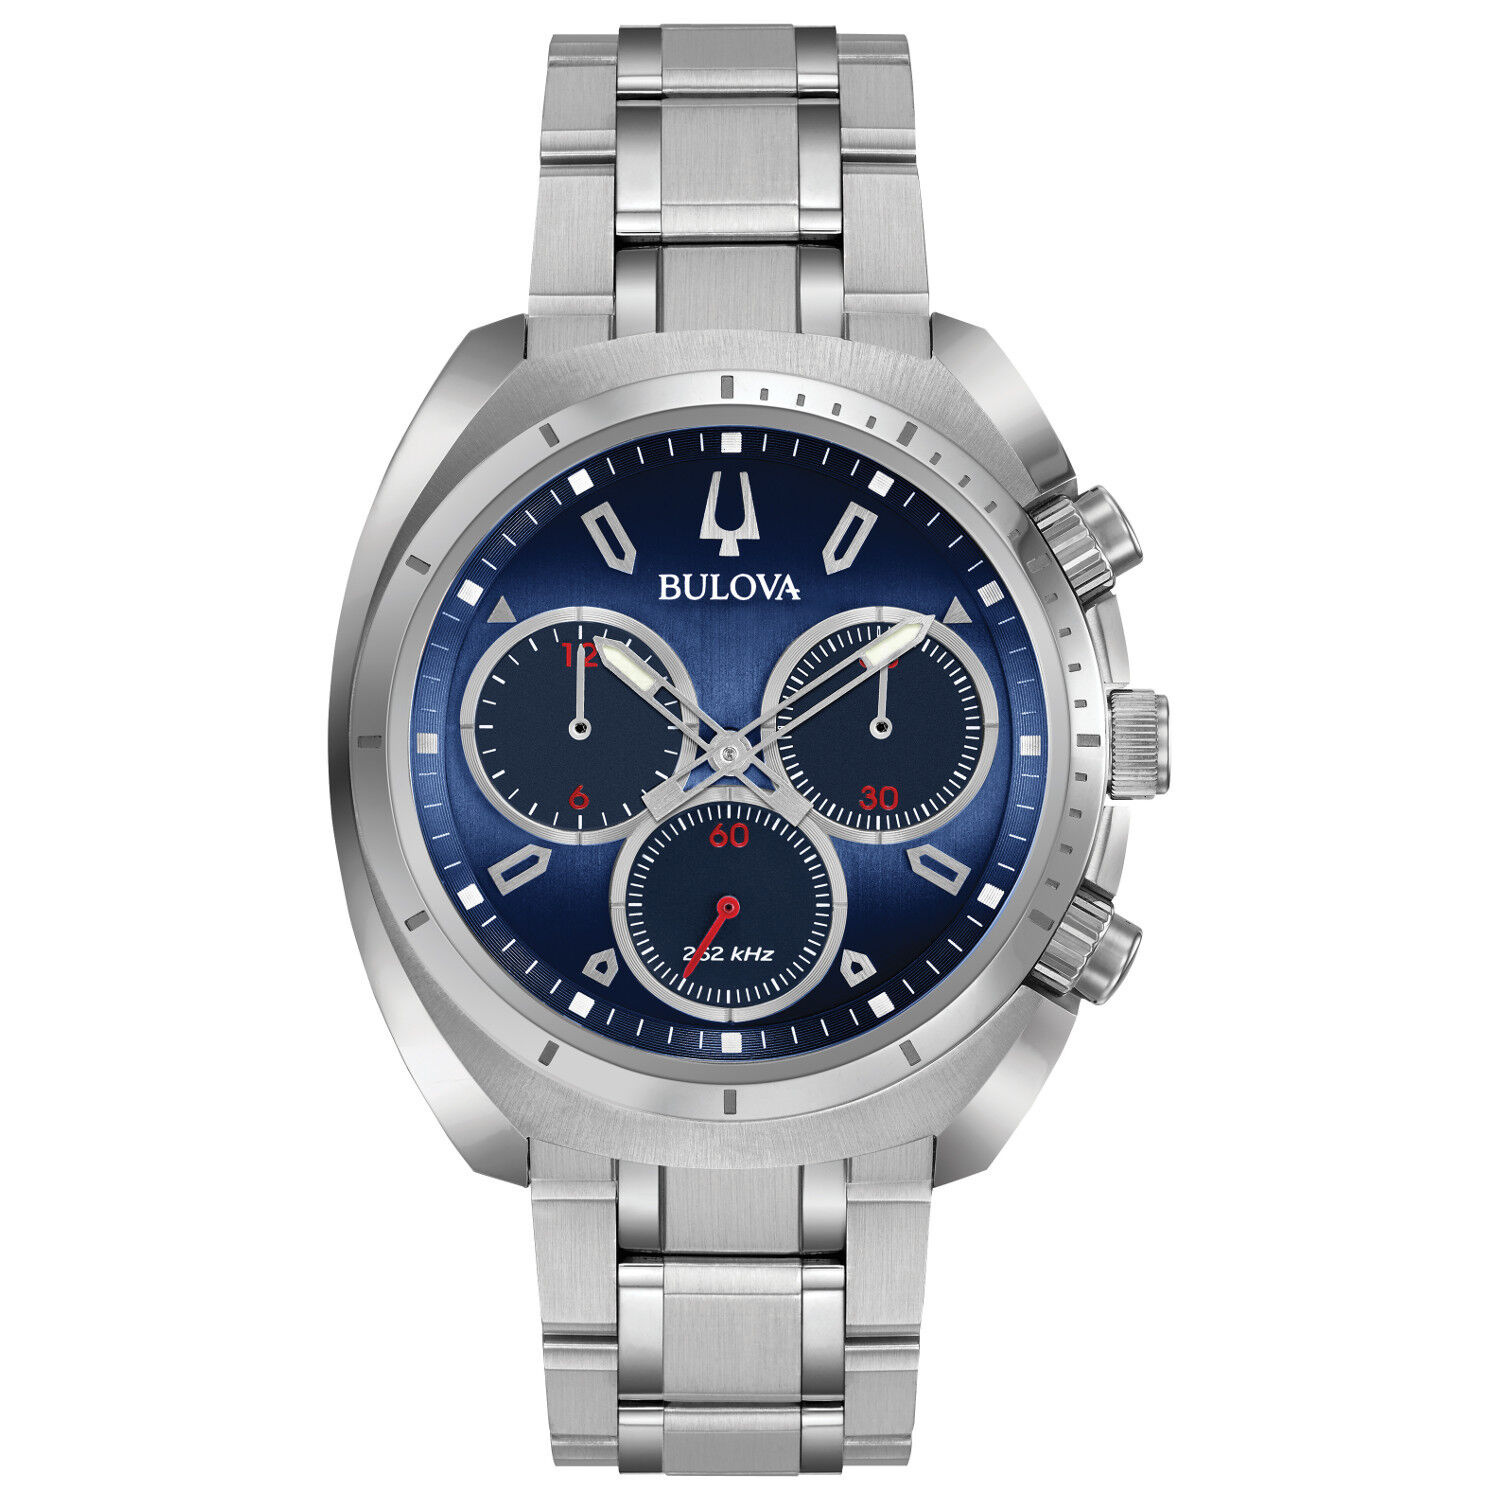 061f1a35b28 Details about Bulova Curv Men s Chronograph Blue Dial Quartz Bracelet 43mm  Watch 96A185